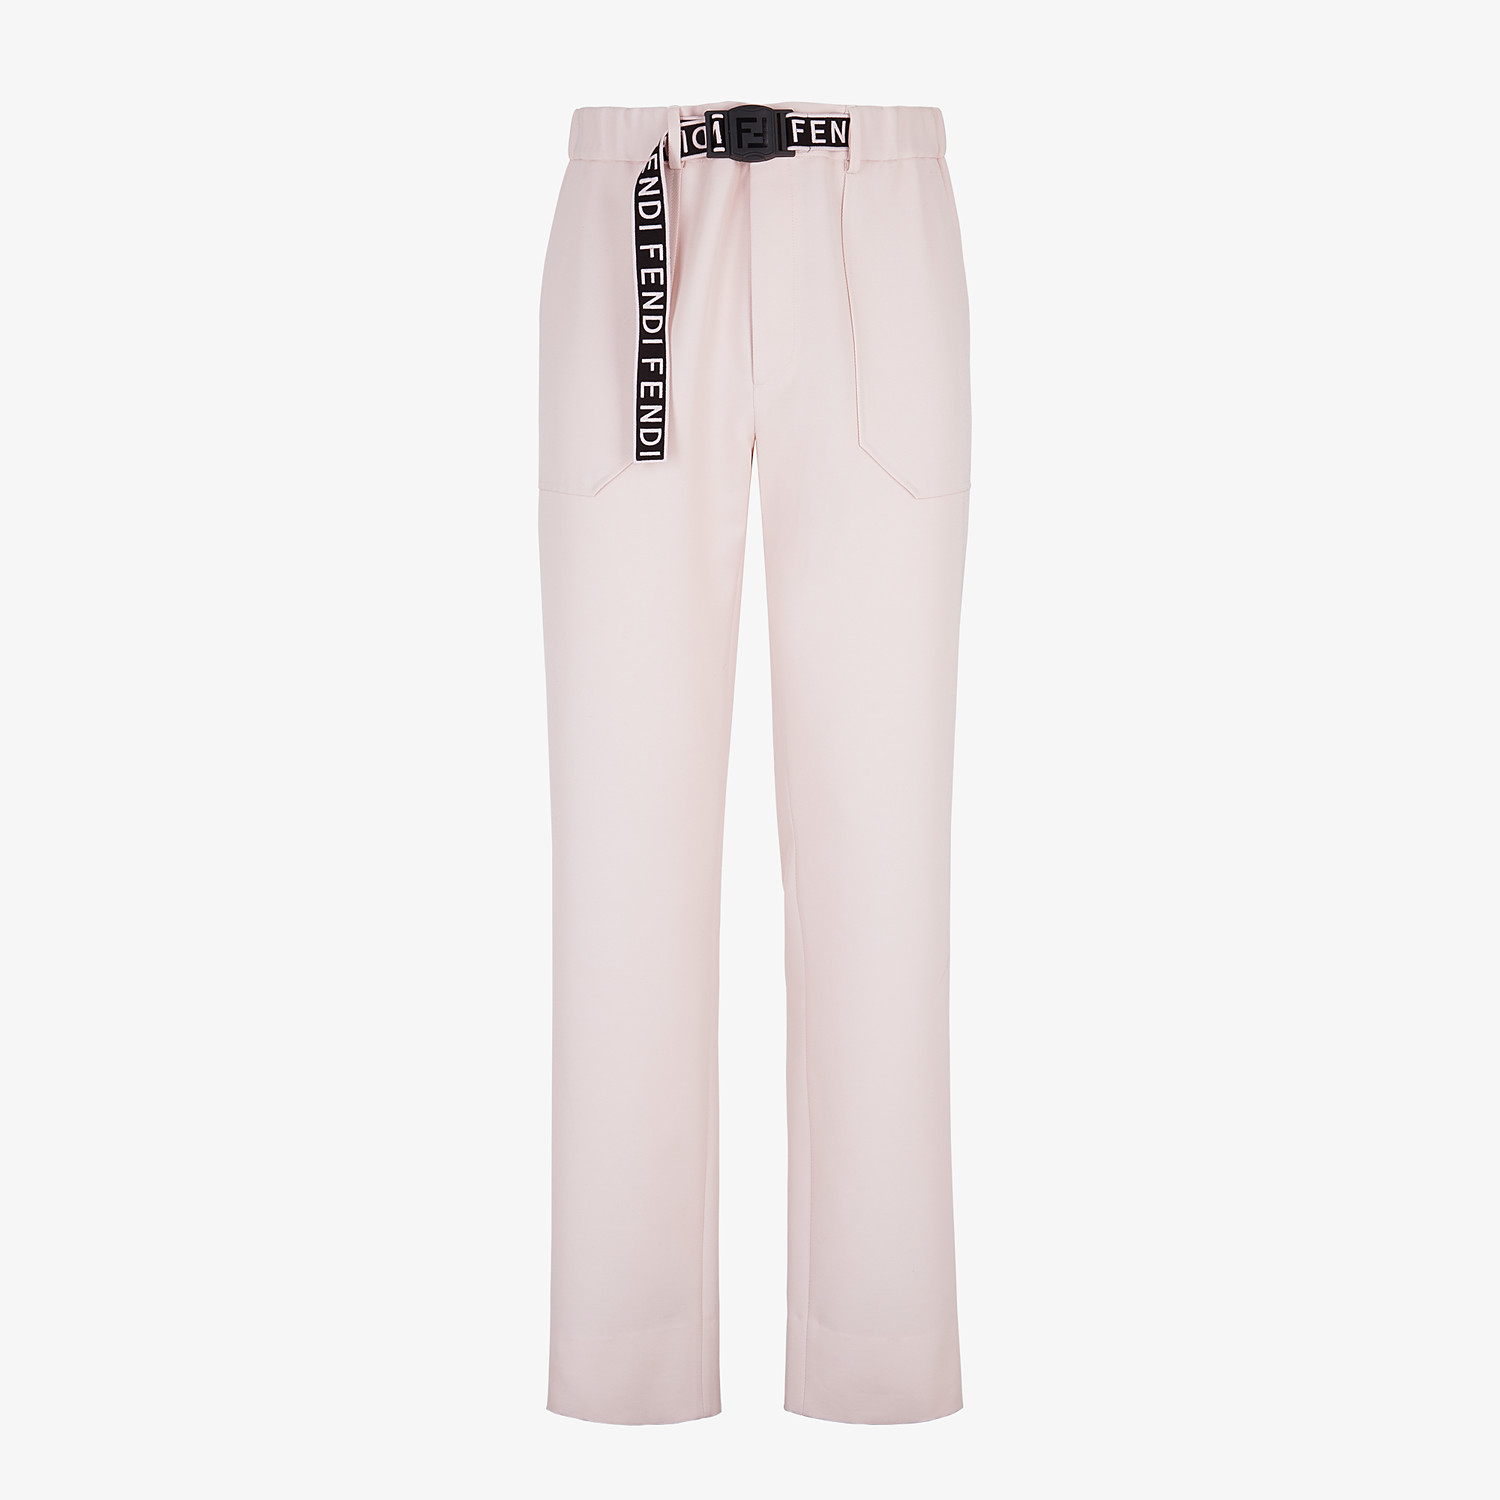 FENDI TROUSERS - Pink wool trousers - view 1 detail